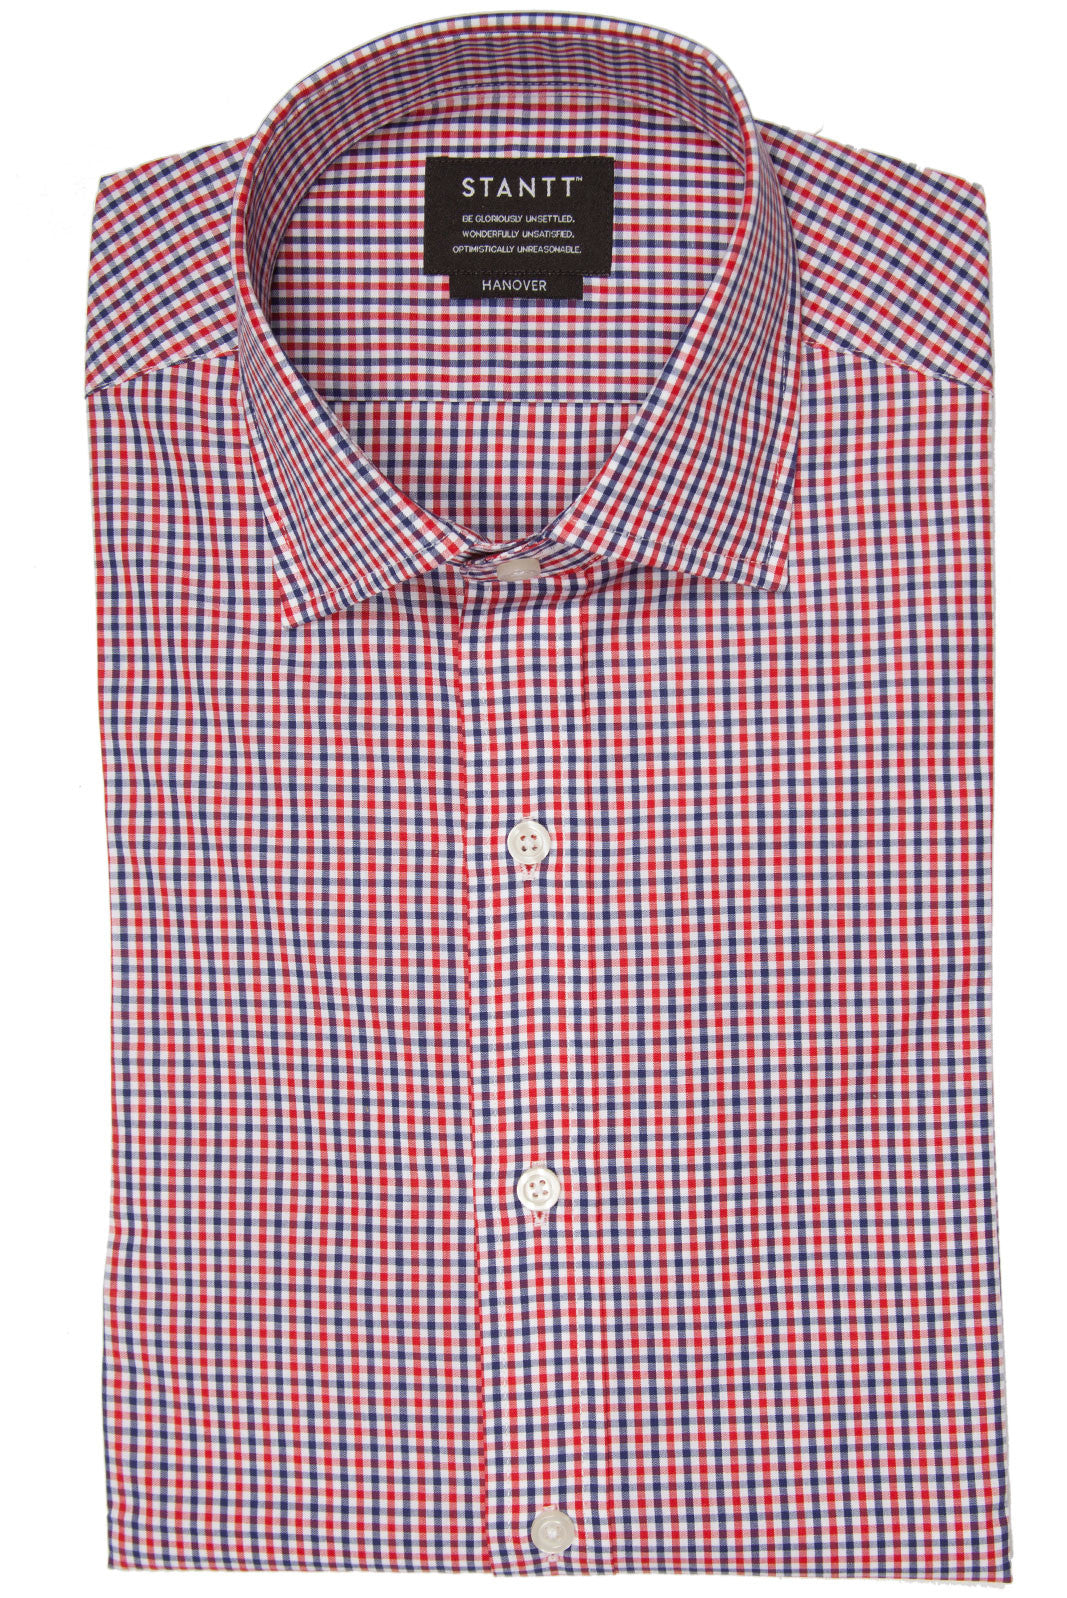 Navy and Red Gingham: Semi-Spread Collar, Barrel Cuff